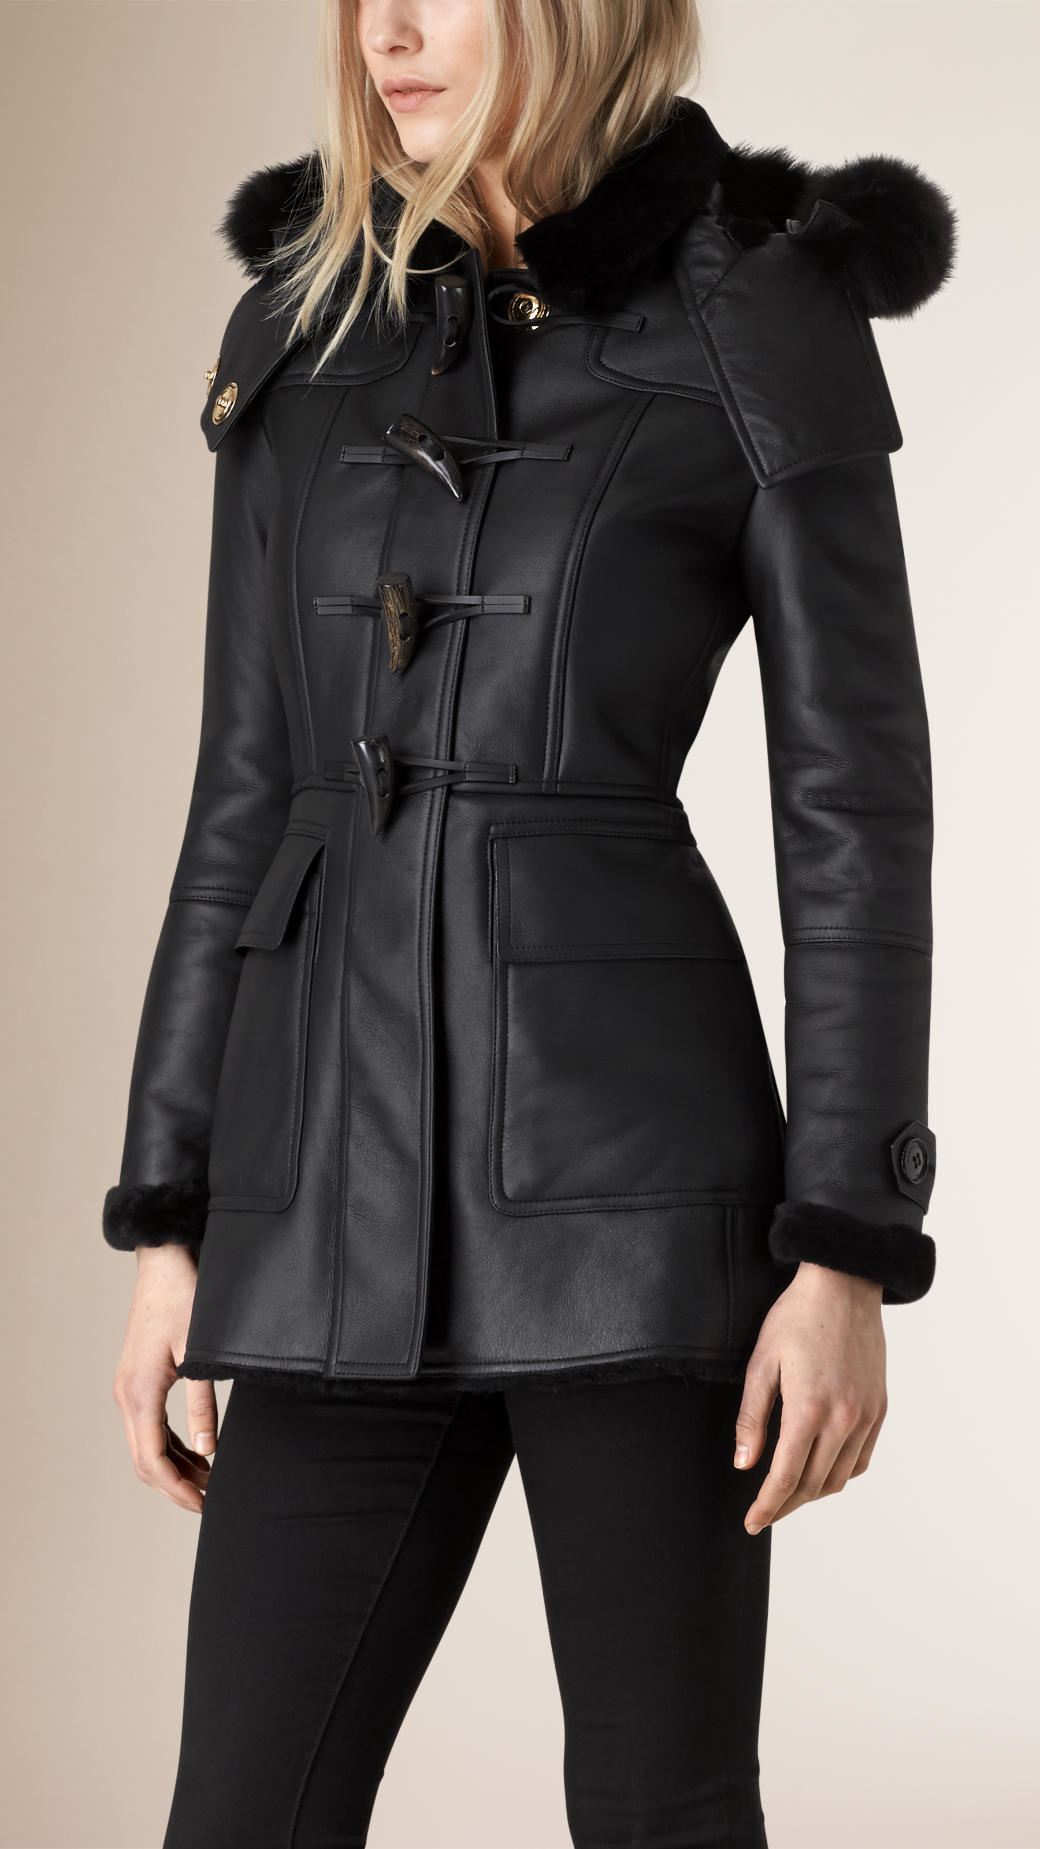 Burberry Fox Fur Trim Shearling Duffle Coat Black in Black | Lyst